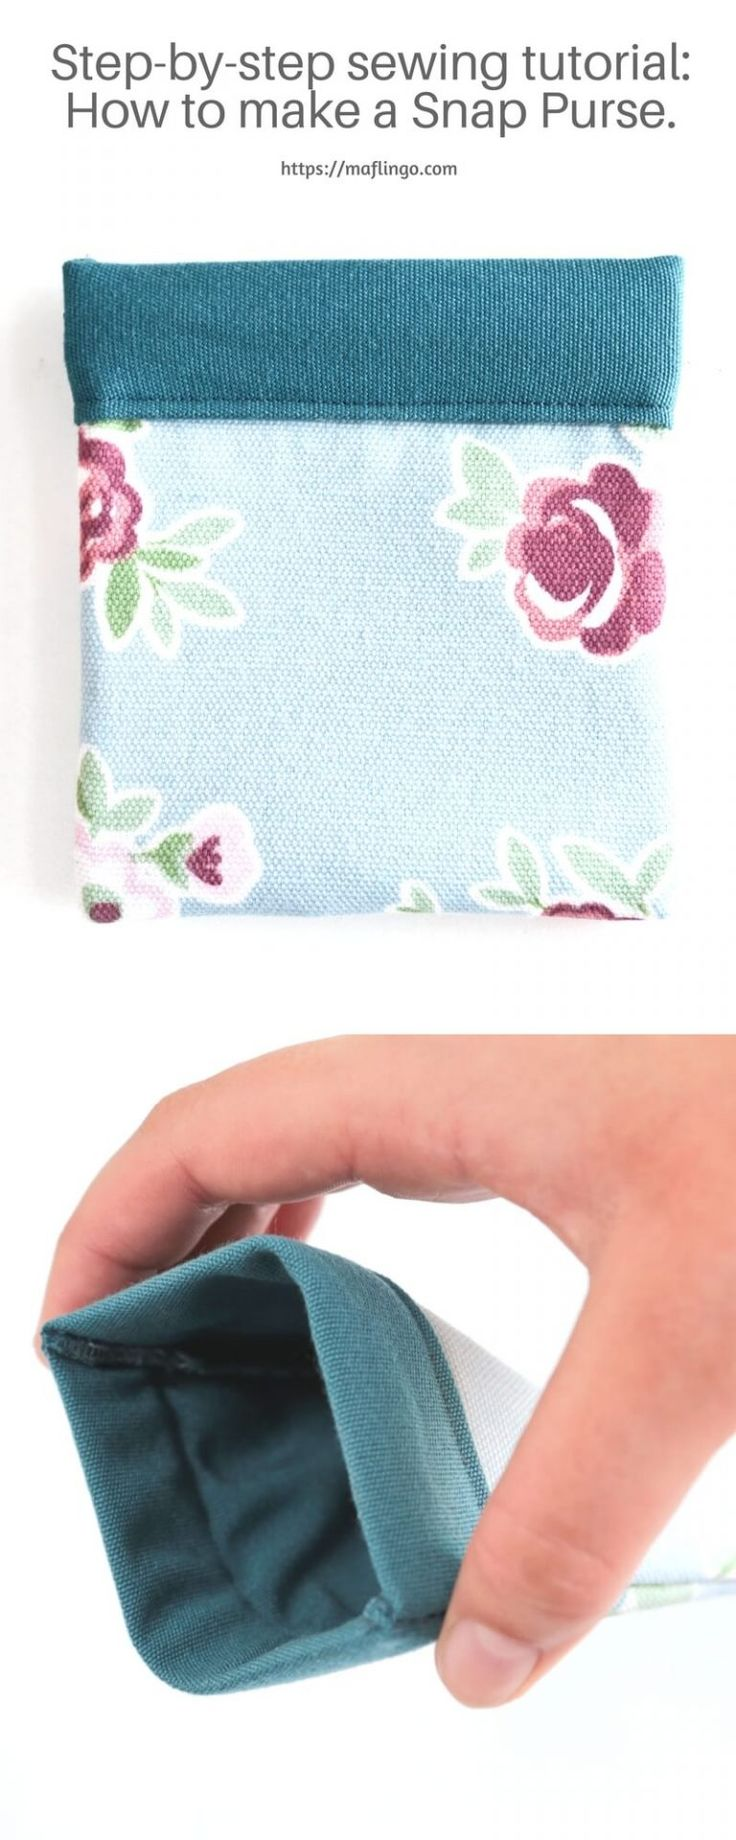 Step-by-Step Sewing Tutorial. How to make your own snap purse using a tape measure. You can customise the pattern to make glasses or sunglasses cases too. Perfect for gifts.